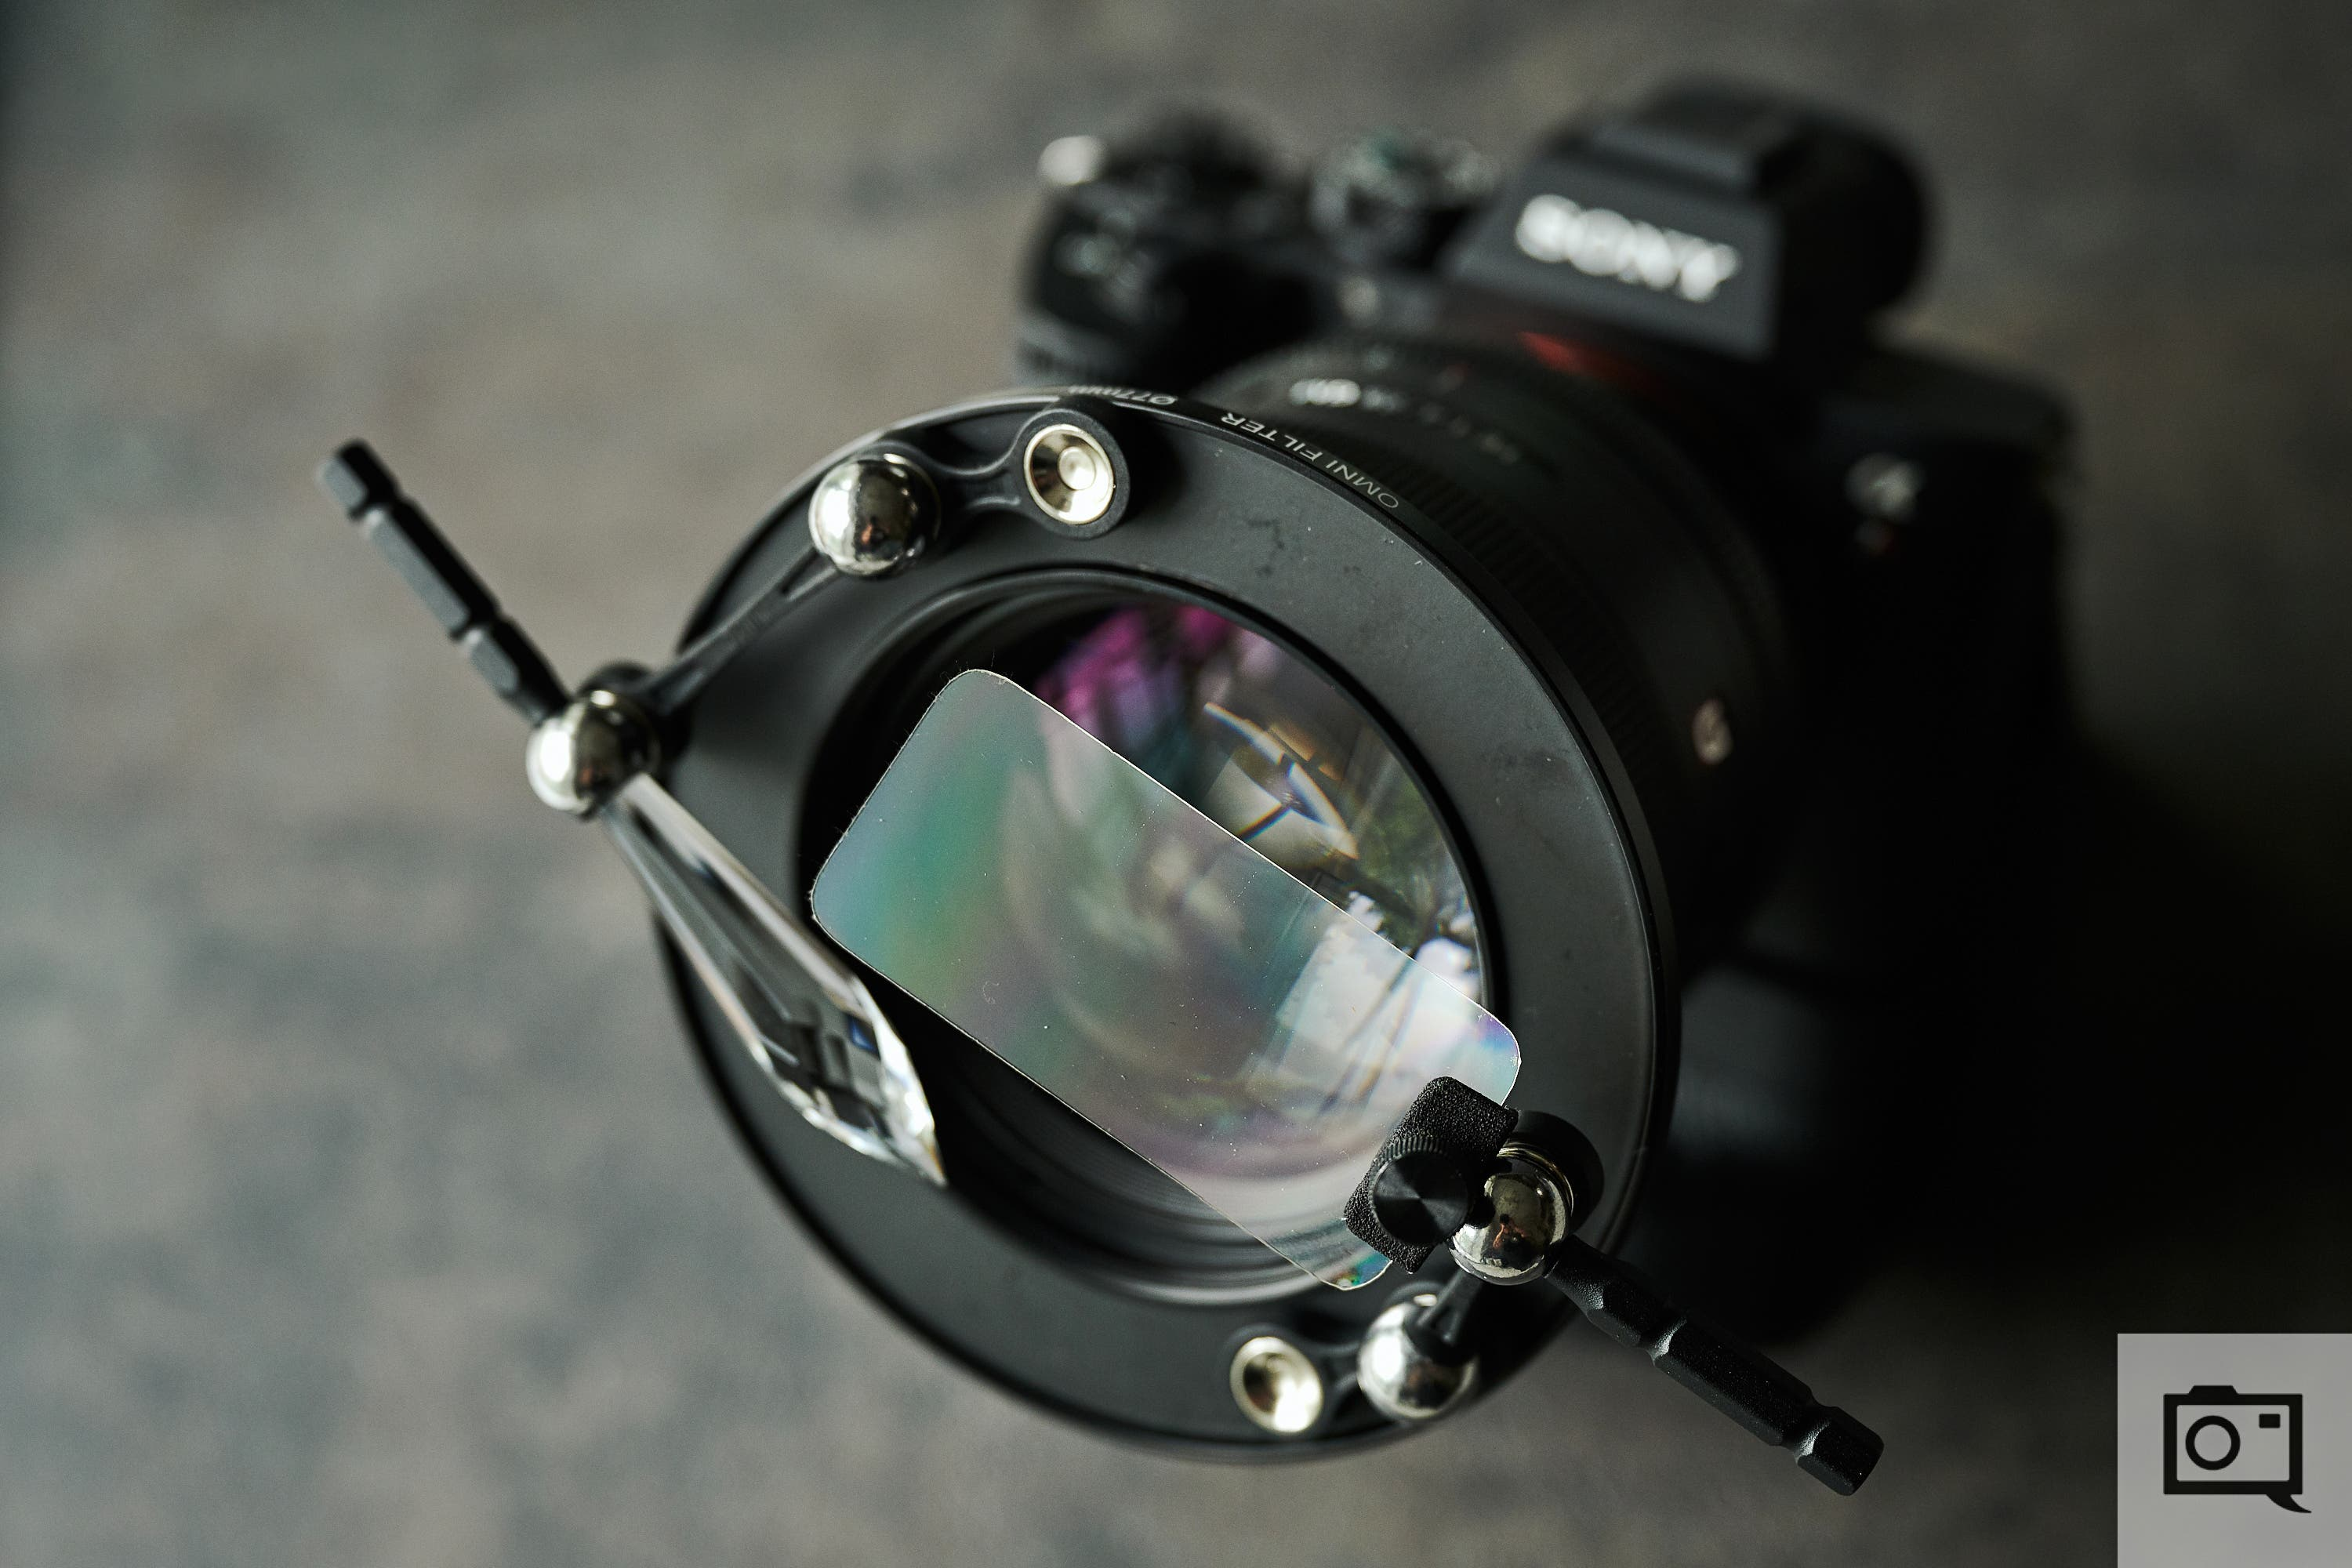 Review: Lensbaby OMNI Creative Filter System (That Extra Pop We Need)